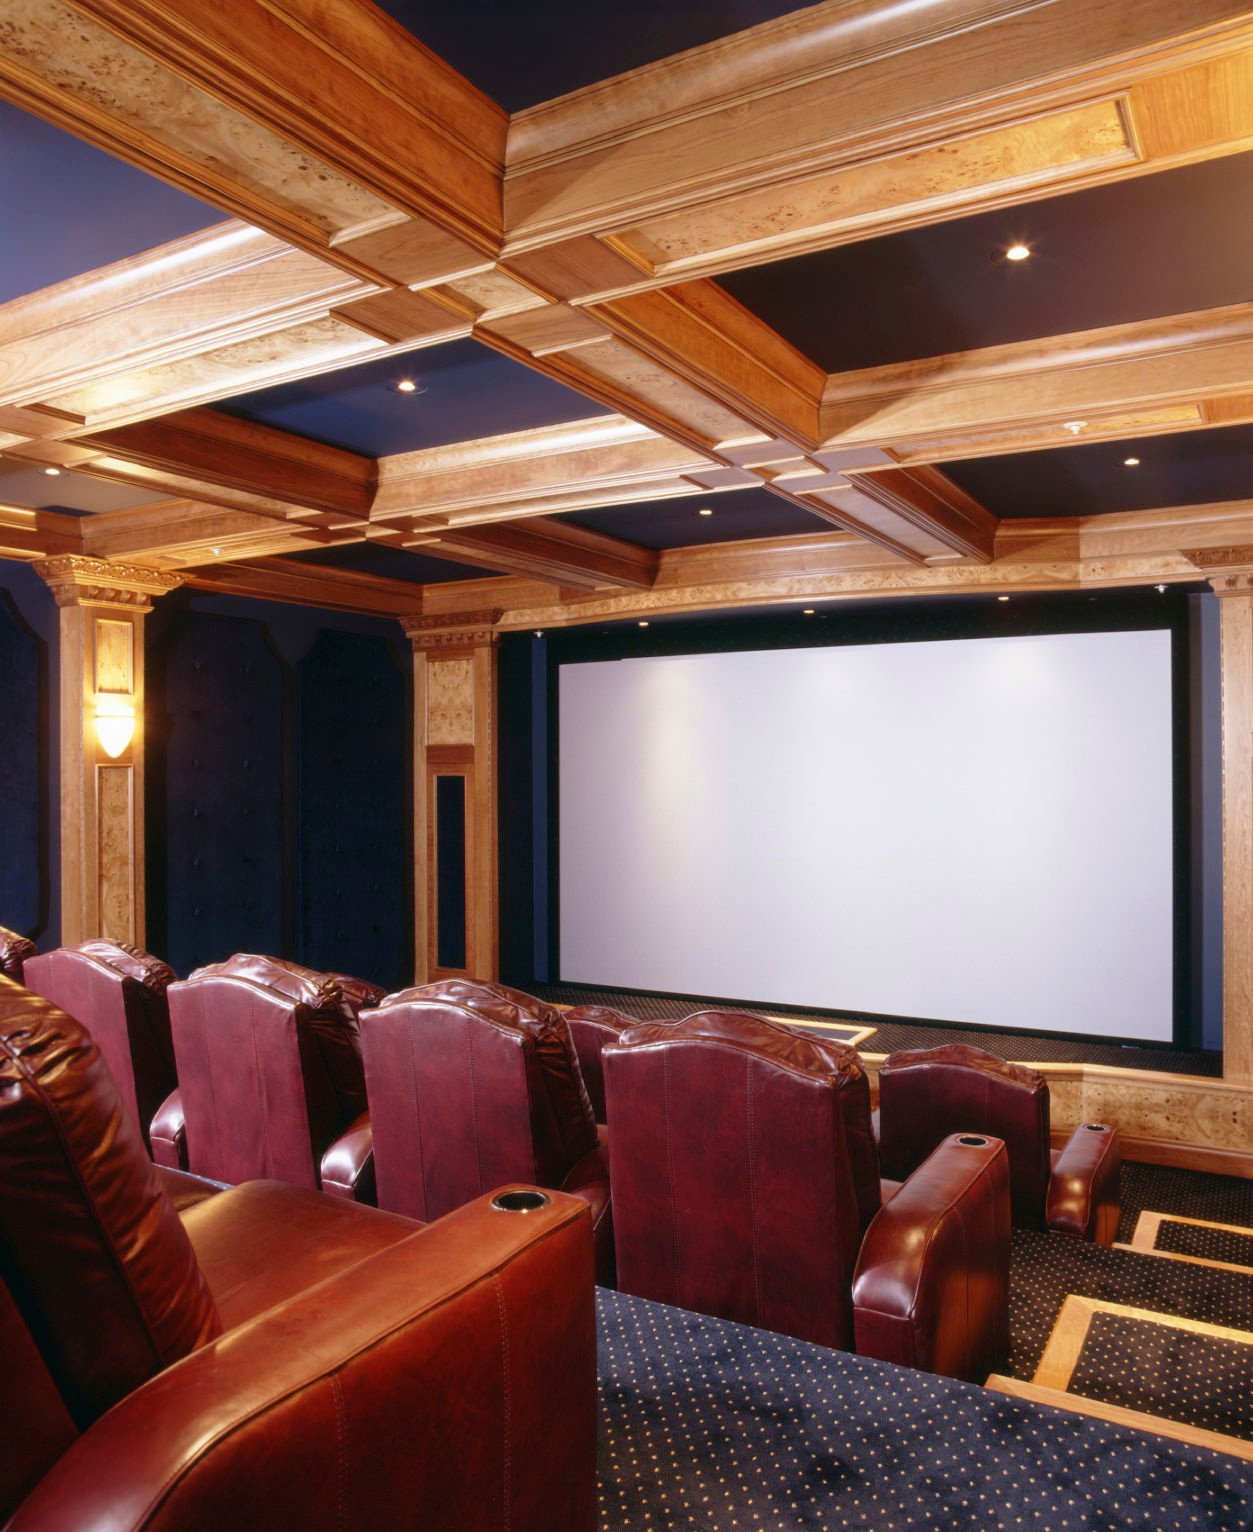 Tips For Home Theater Room Design Ideas: 90 Home Theater & Media Room Ideas (Photos